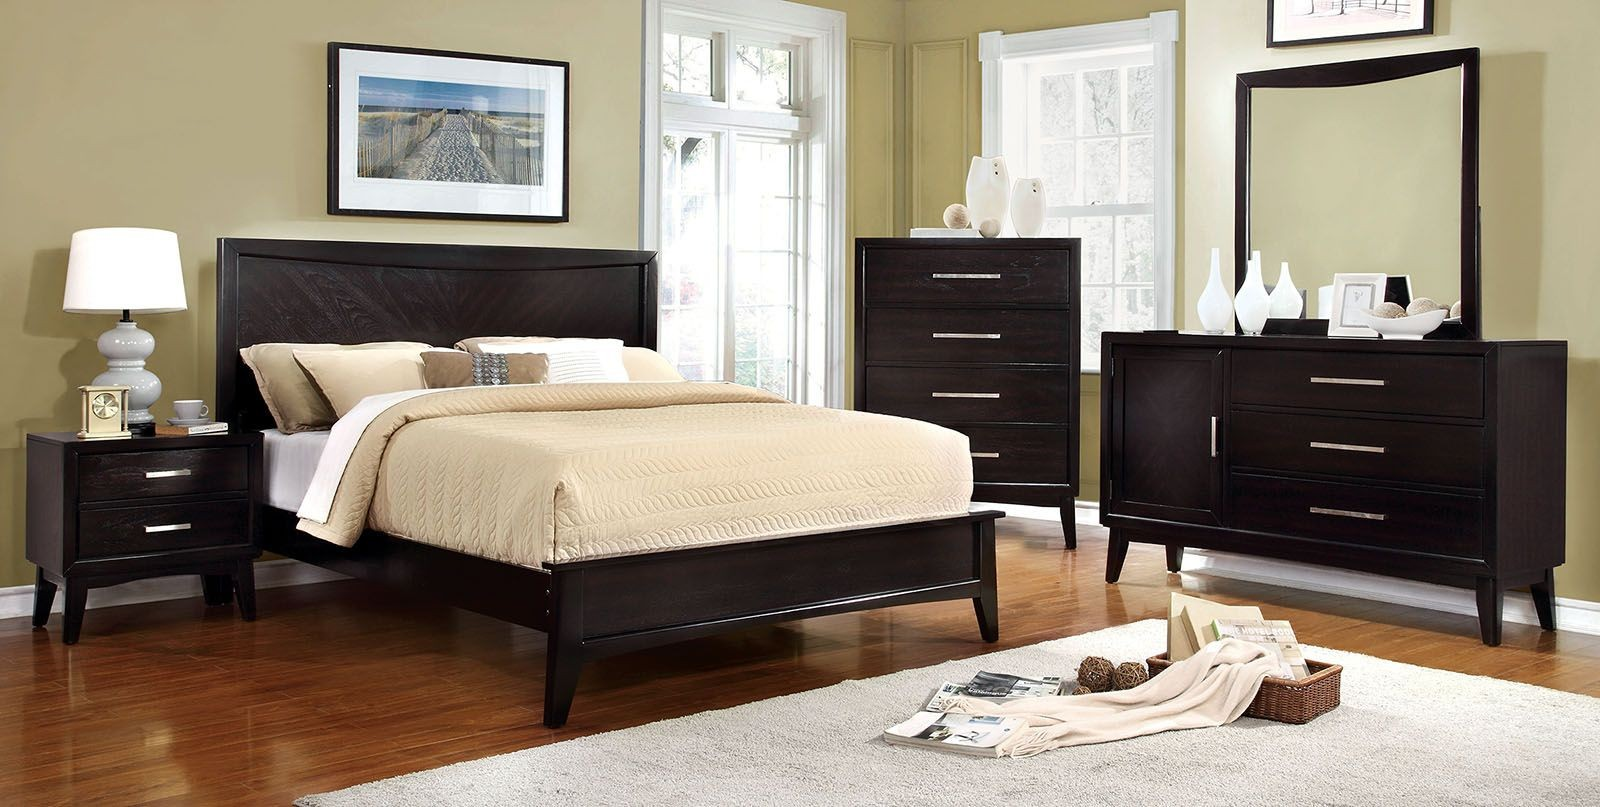 Snyder Espresso Bedroom Set From Furniture Of America